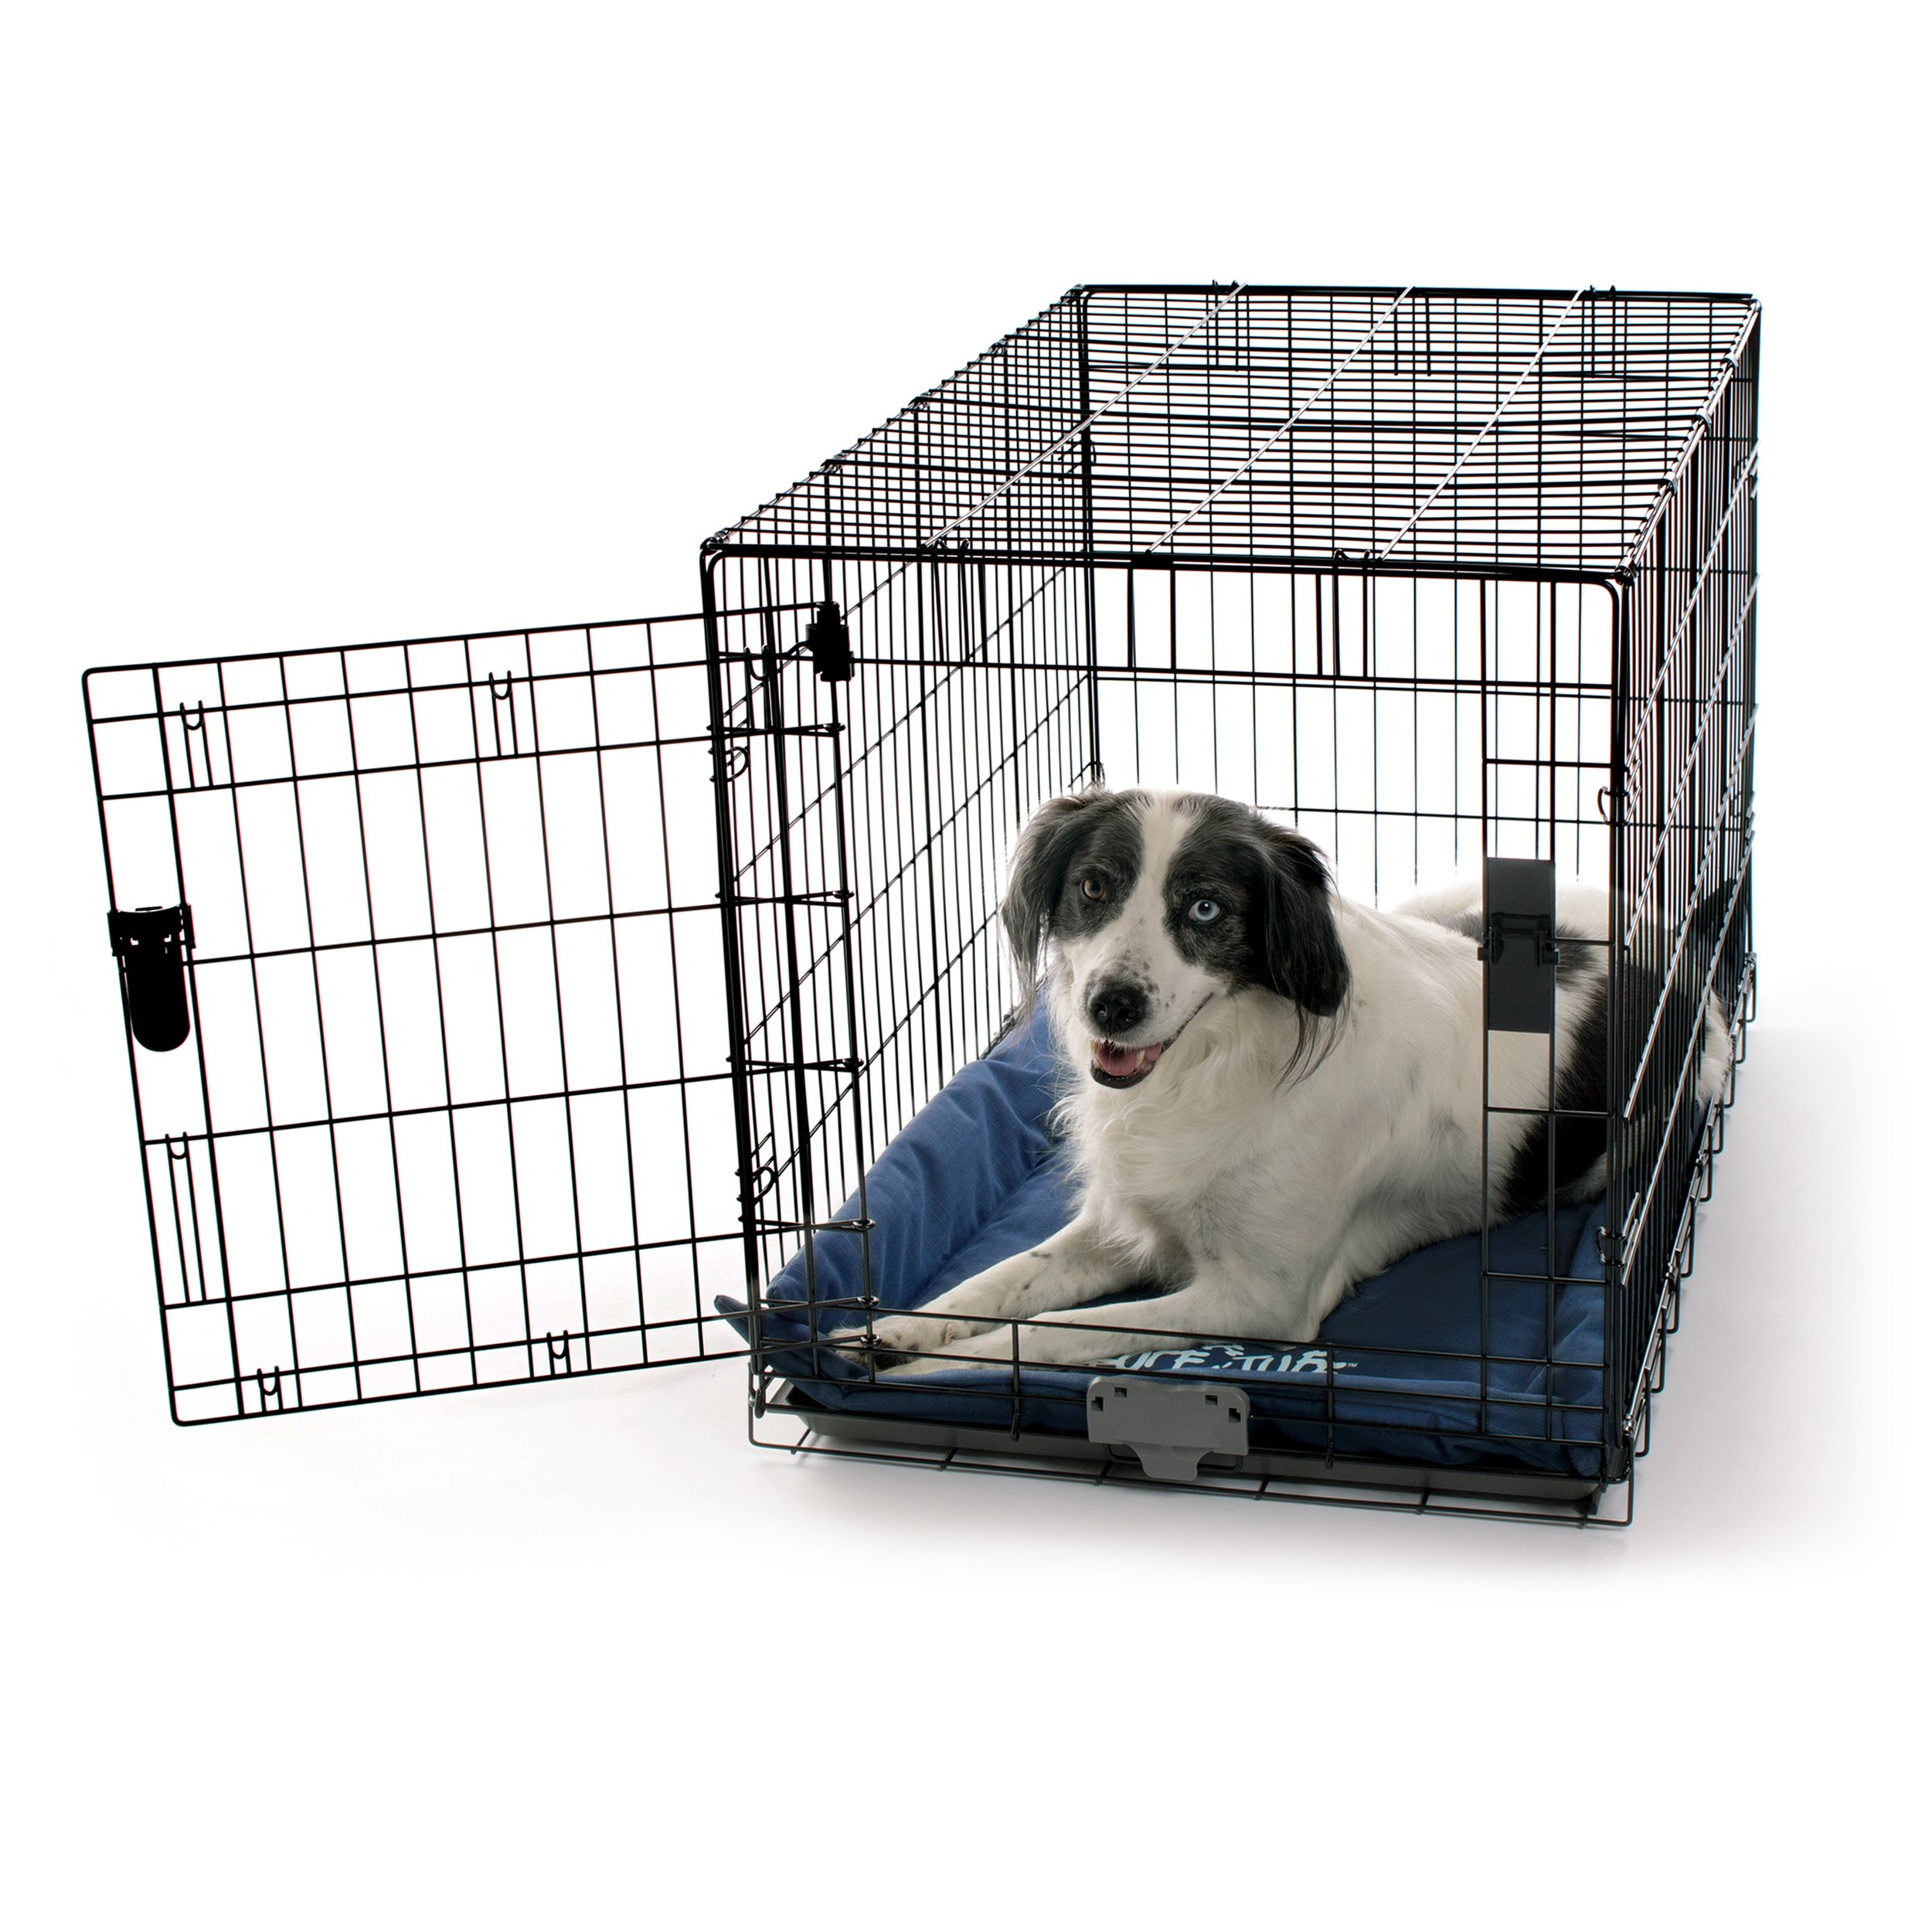 K&H Pet Products K-9 Ruff n' Tuff Crate Pad Large Navy Blue (25'' x 37'') - 1260 Denier Rip-Stop Polyester for Pets That Need Extra Tough Fabric